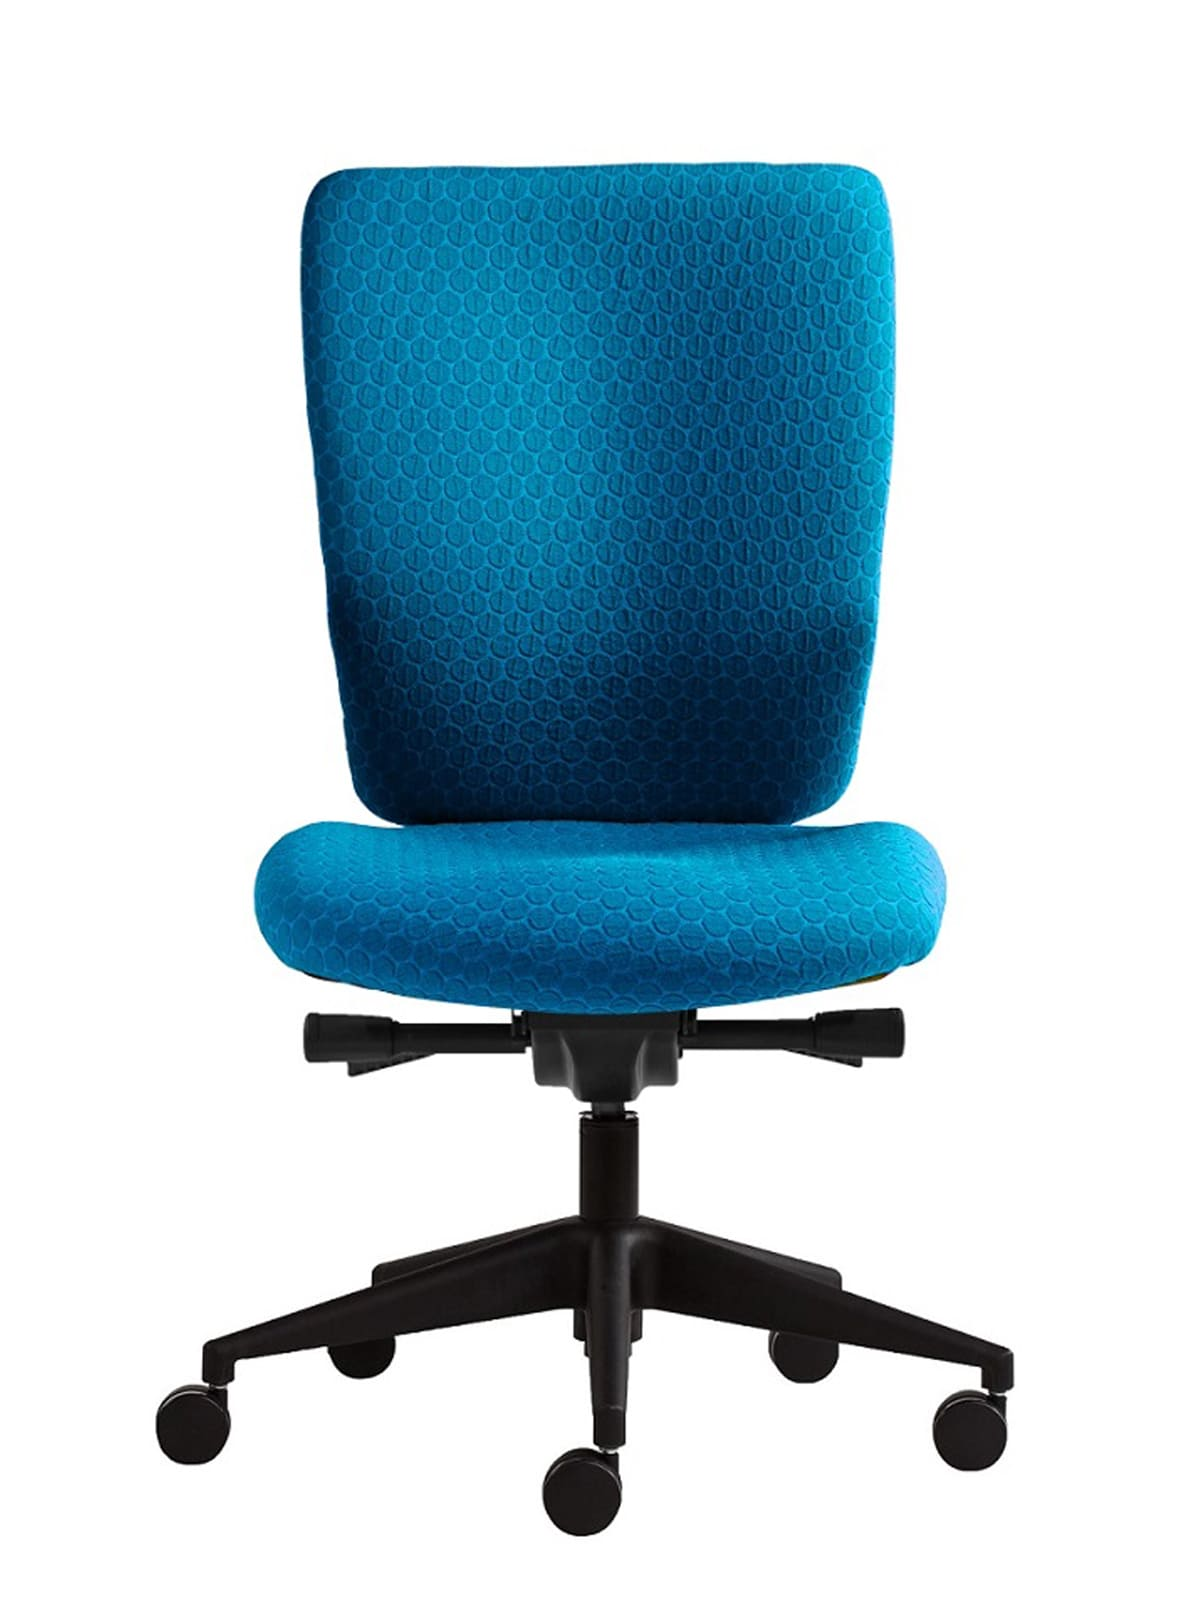 Boardroom Chairs Buy A Linear Manager Chair Online Adjustable Chairs Boardroom Chairs Ergonomic Office Chairs Executive Office Chairs Fabric Office Chairs